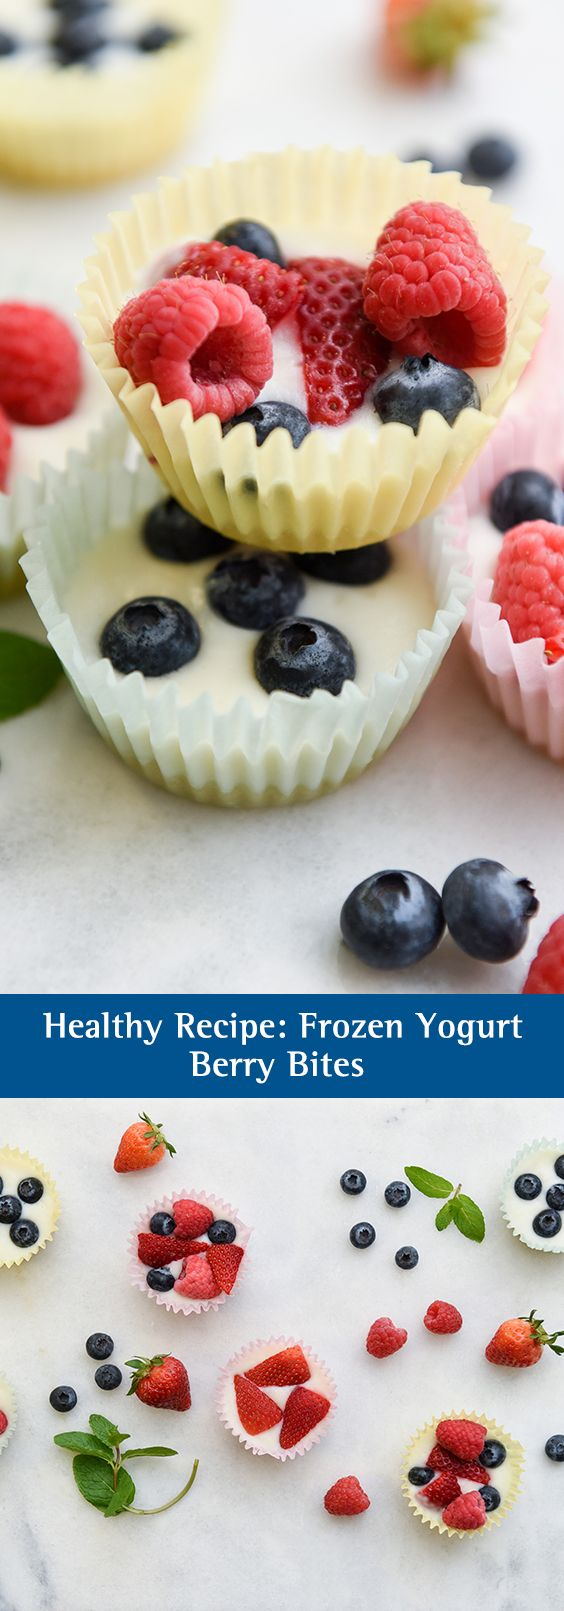 Healthy Recipe: Frozen Yogurt Berry Bites. These frozen yogurt berry bites are easy to make, cute as can be, and low in fat and calories. Make this delicious frozen yogurt recipe for your go-to healthy summer treat.